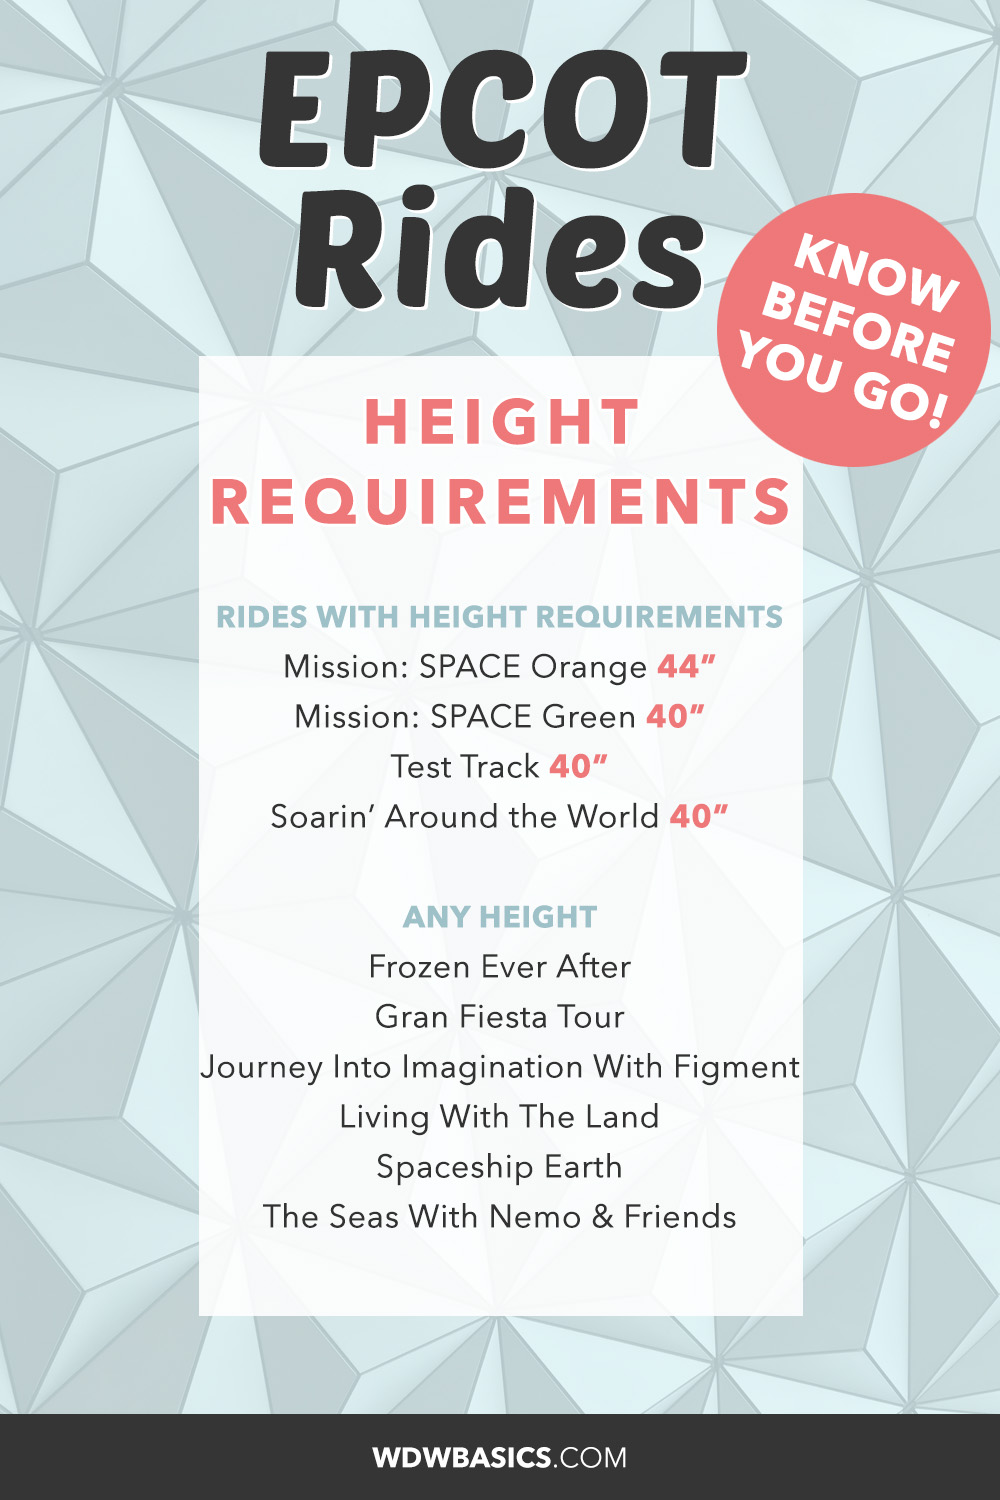 Epcot Rides height requirements